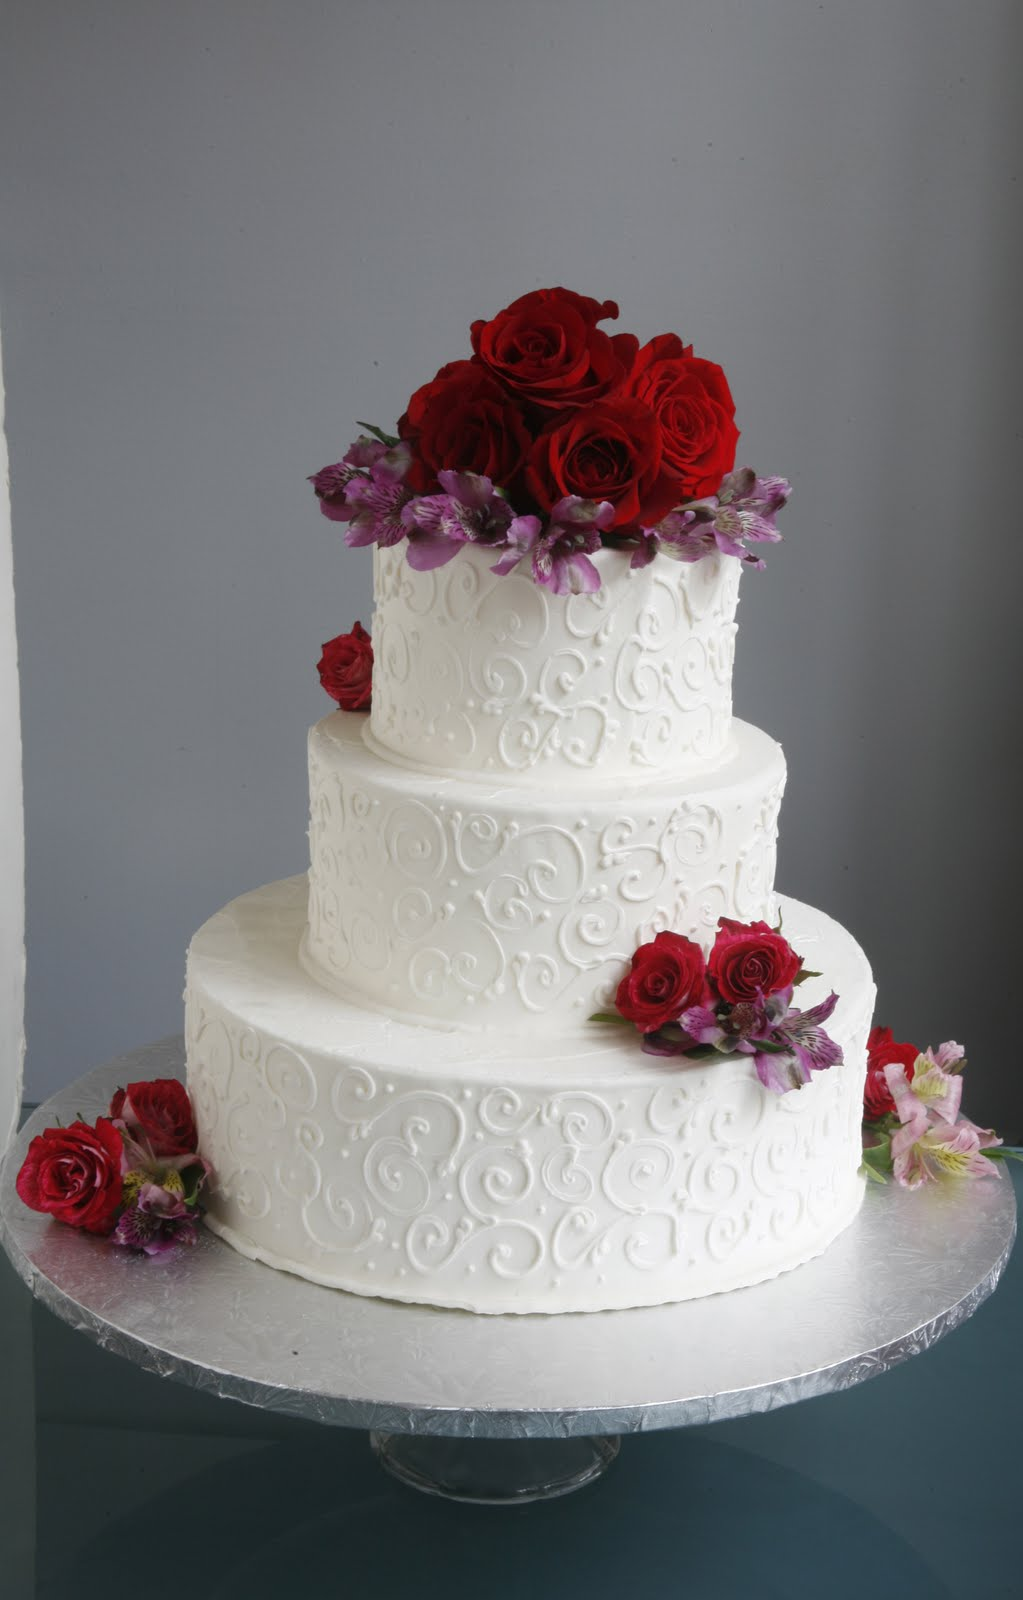 Wedding Cake With Fresh Flowers From Trader Joe S